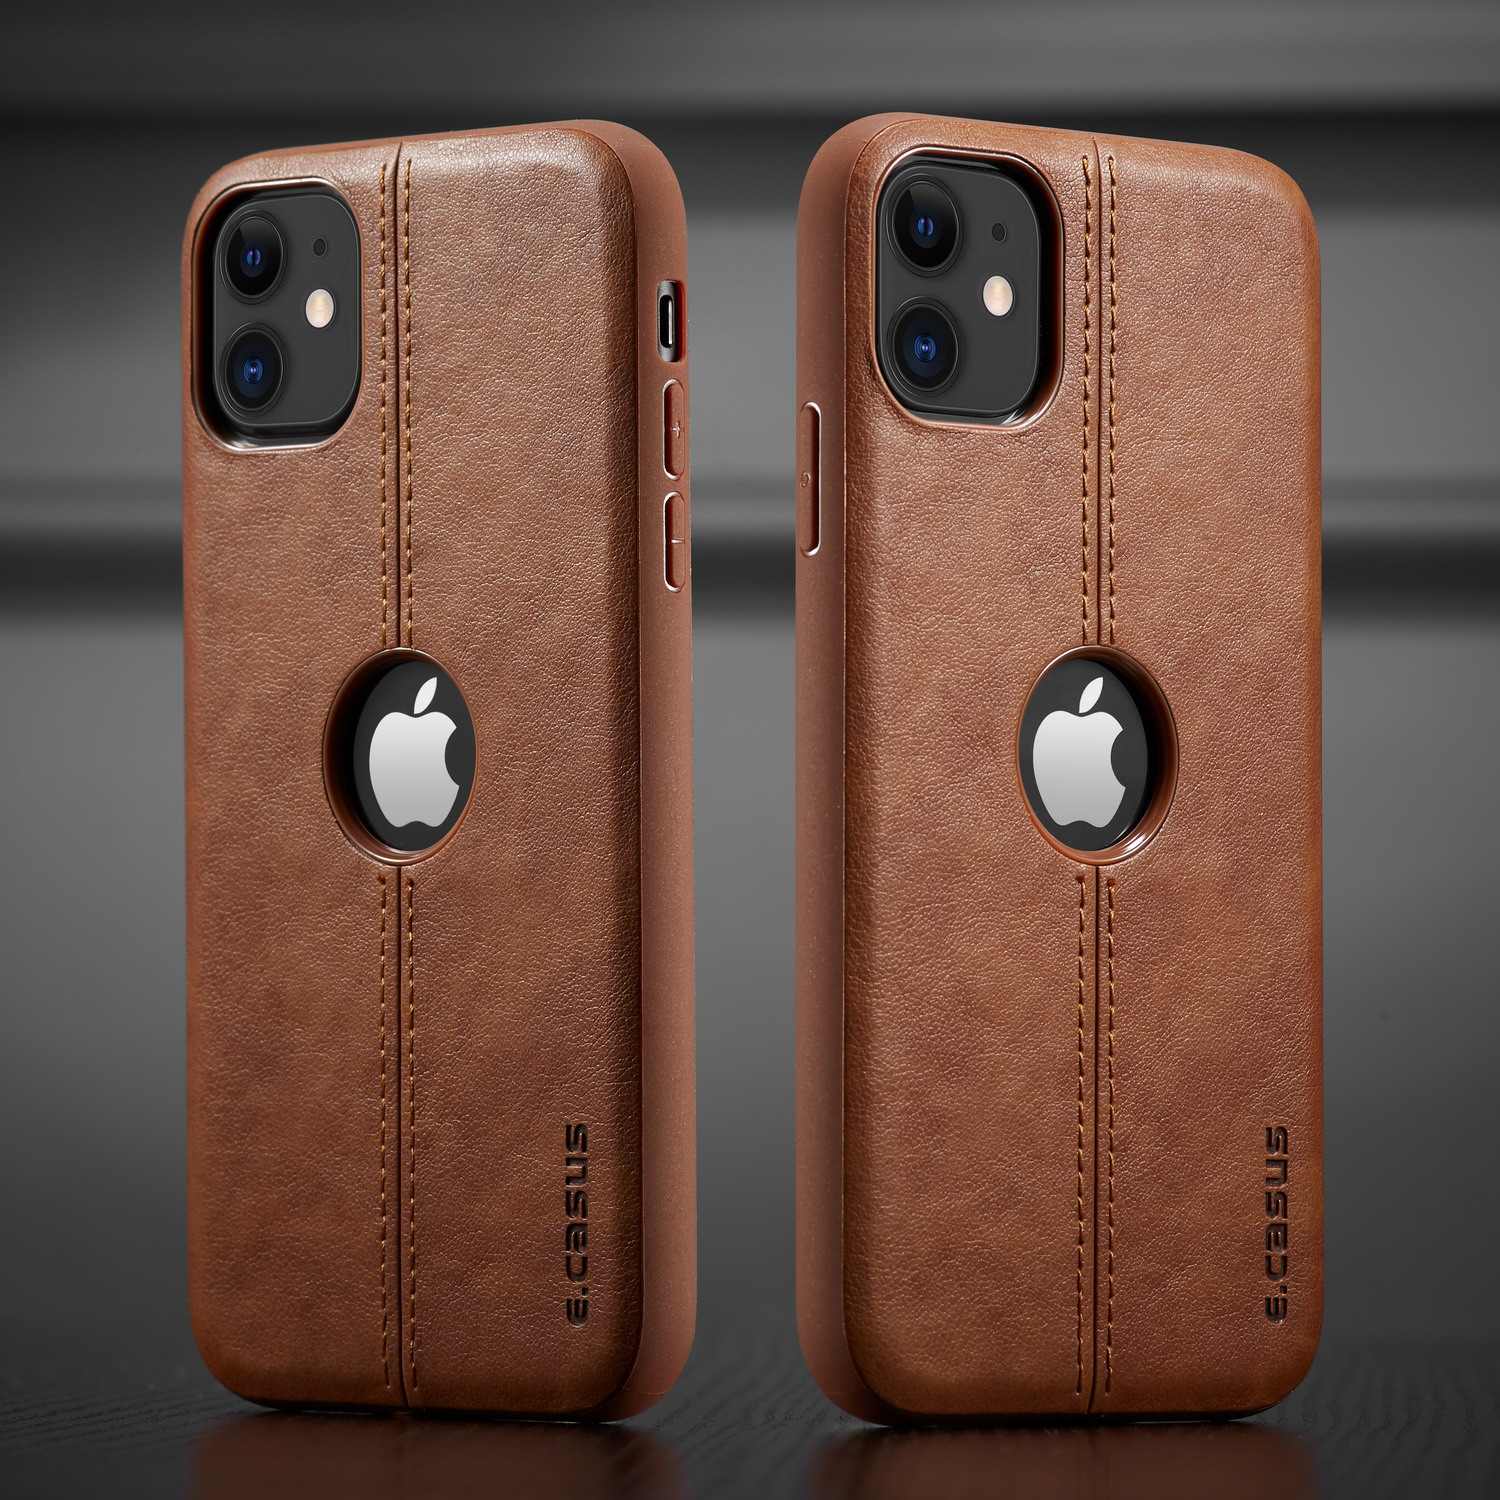 Hab067b81f78b4be4ad71e94b91186036w For iPhone 11 11 Pro 11 Pro Max Case New SLIM Luxury Leather Back Case Cover For iPhone 11 XR XS MAX 8 7 6 Plus Shockproof Case